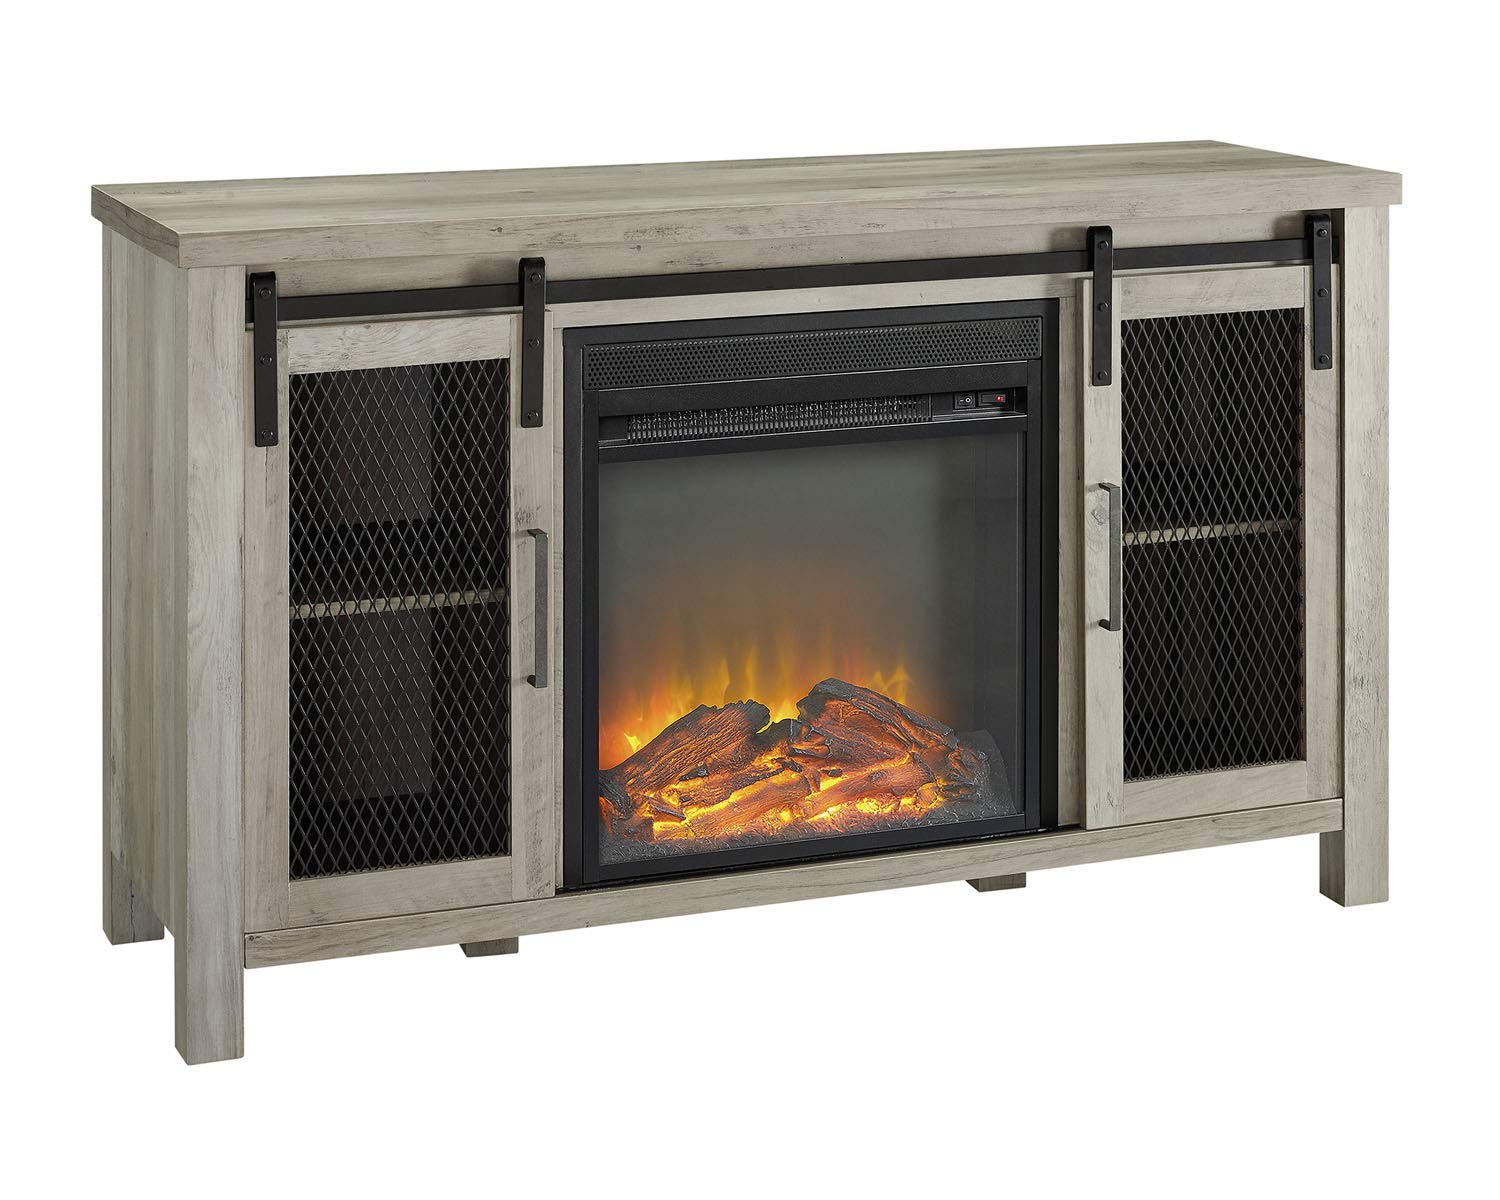 Walker Edison Furniture Company 48 Rustic Farmhouse Fireplace TV Stand – Grey Wash